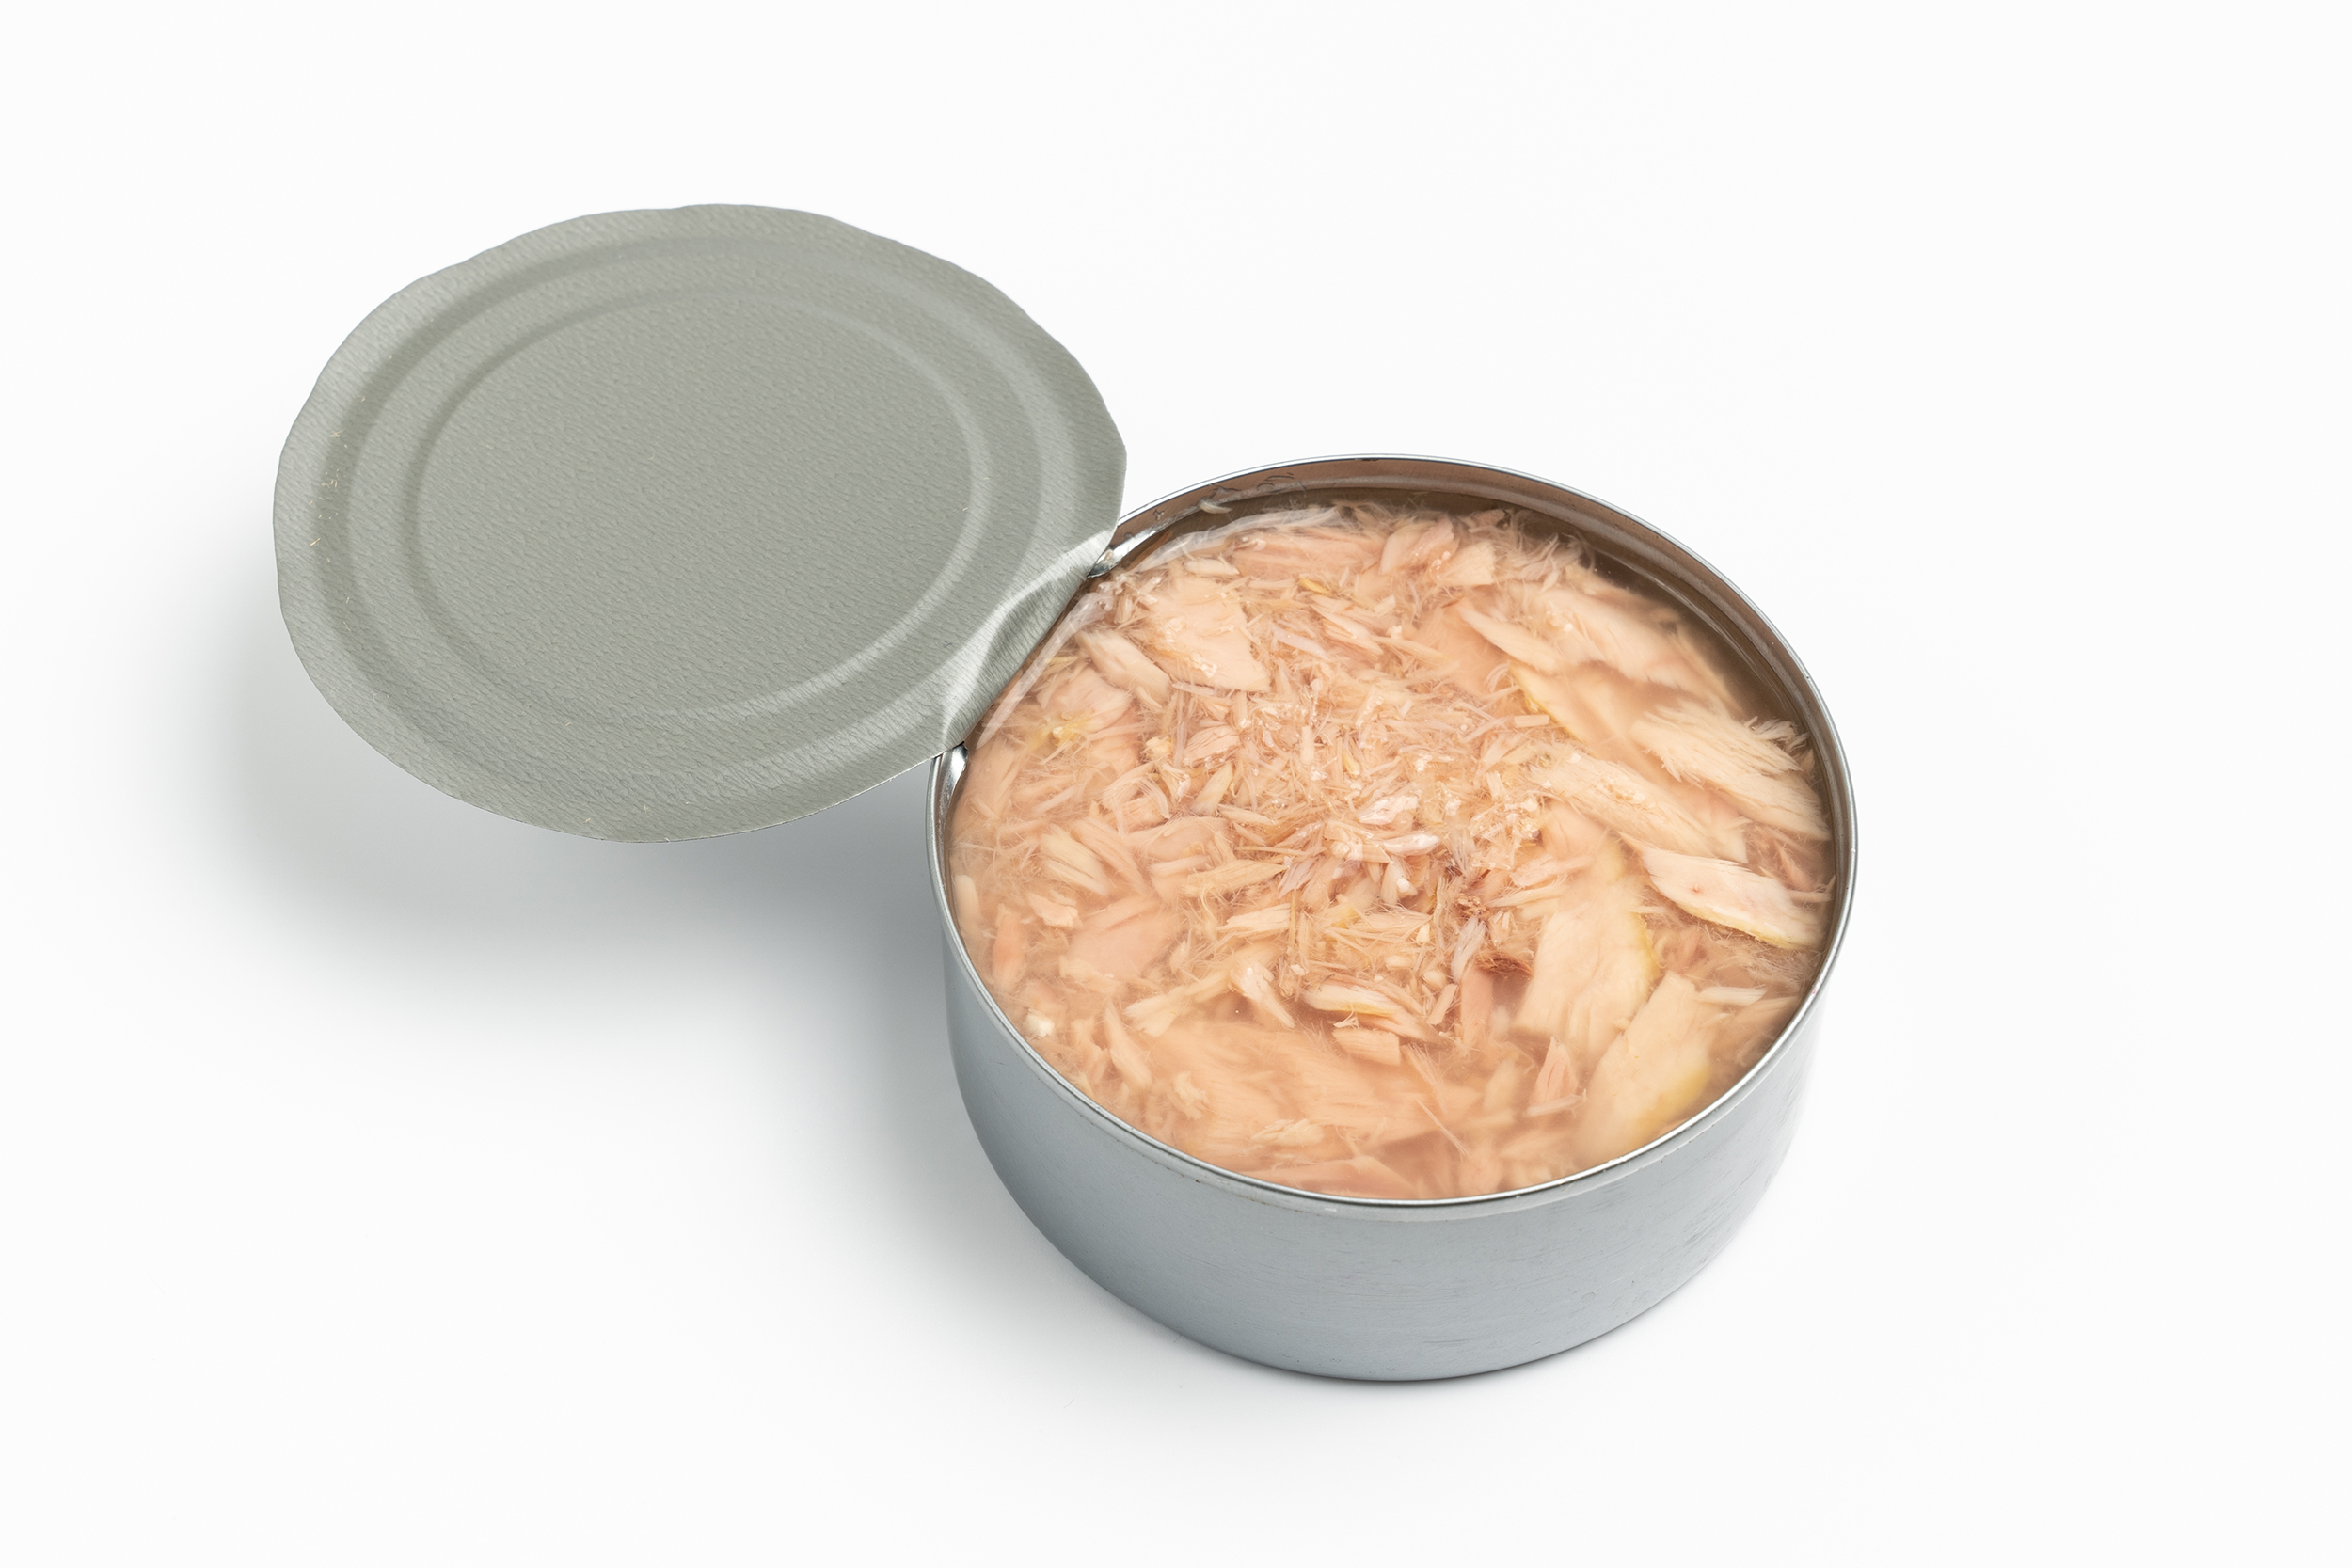 Does Canned Tuna Expire?